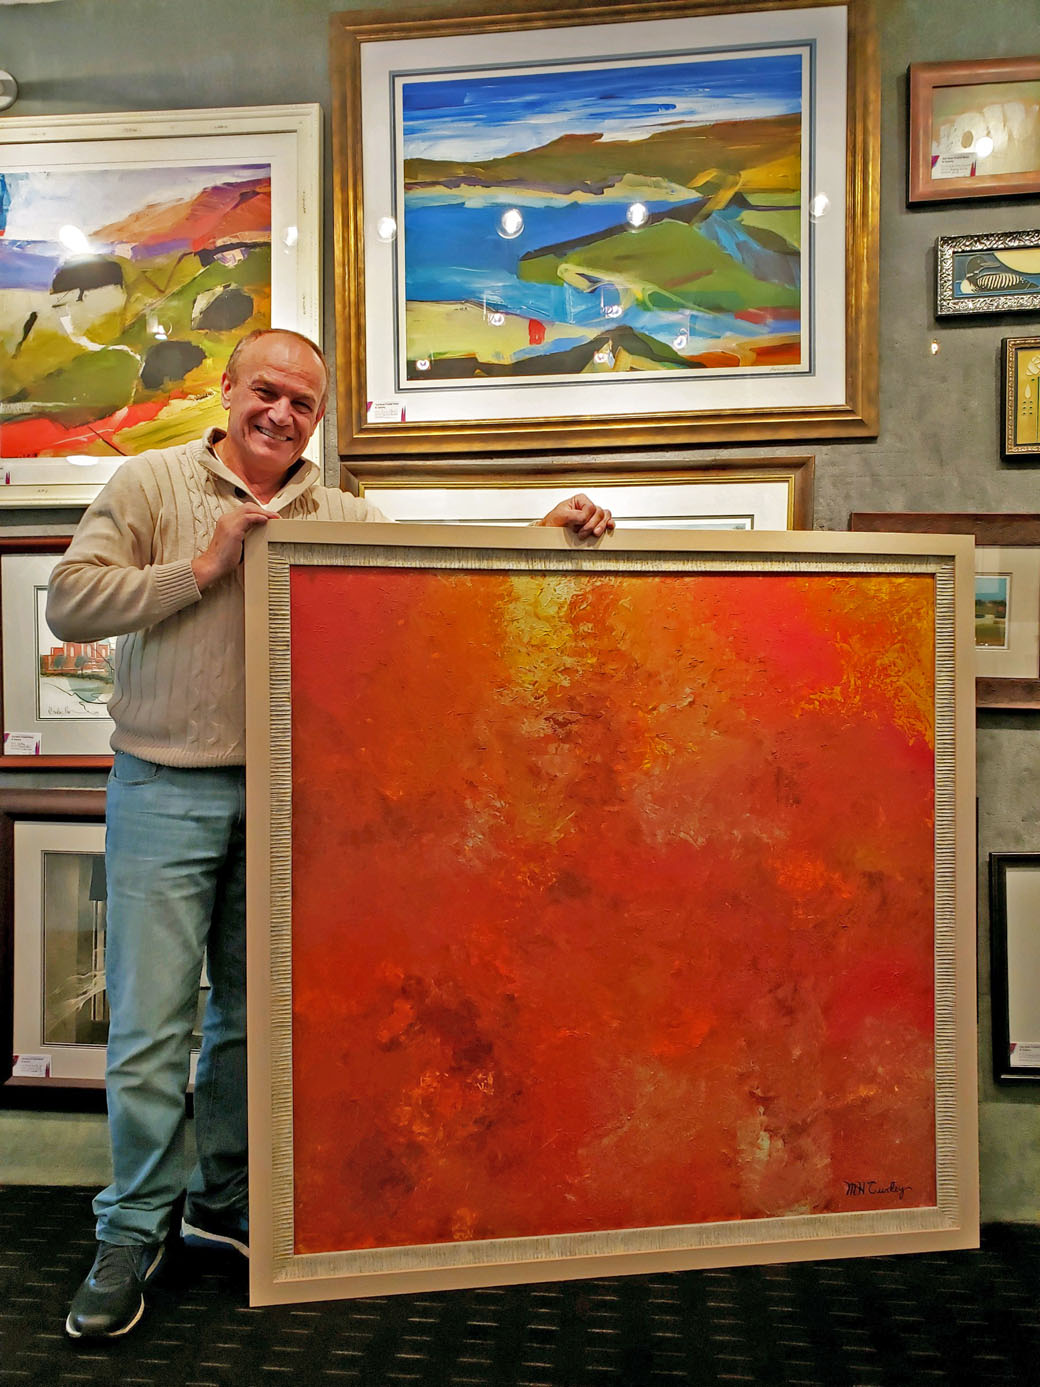 a8050c07ce3e Old Main Frame Shop framed and shipped 4 large originals to a world  headquarter in New York City for a local artist. Let us assist you with all  your framing ...